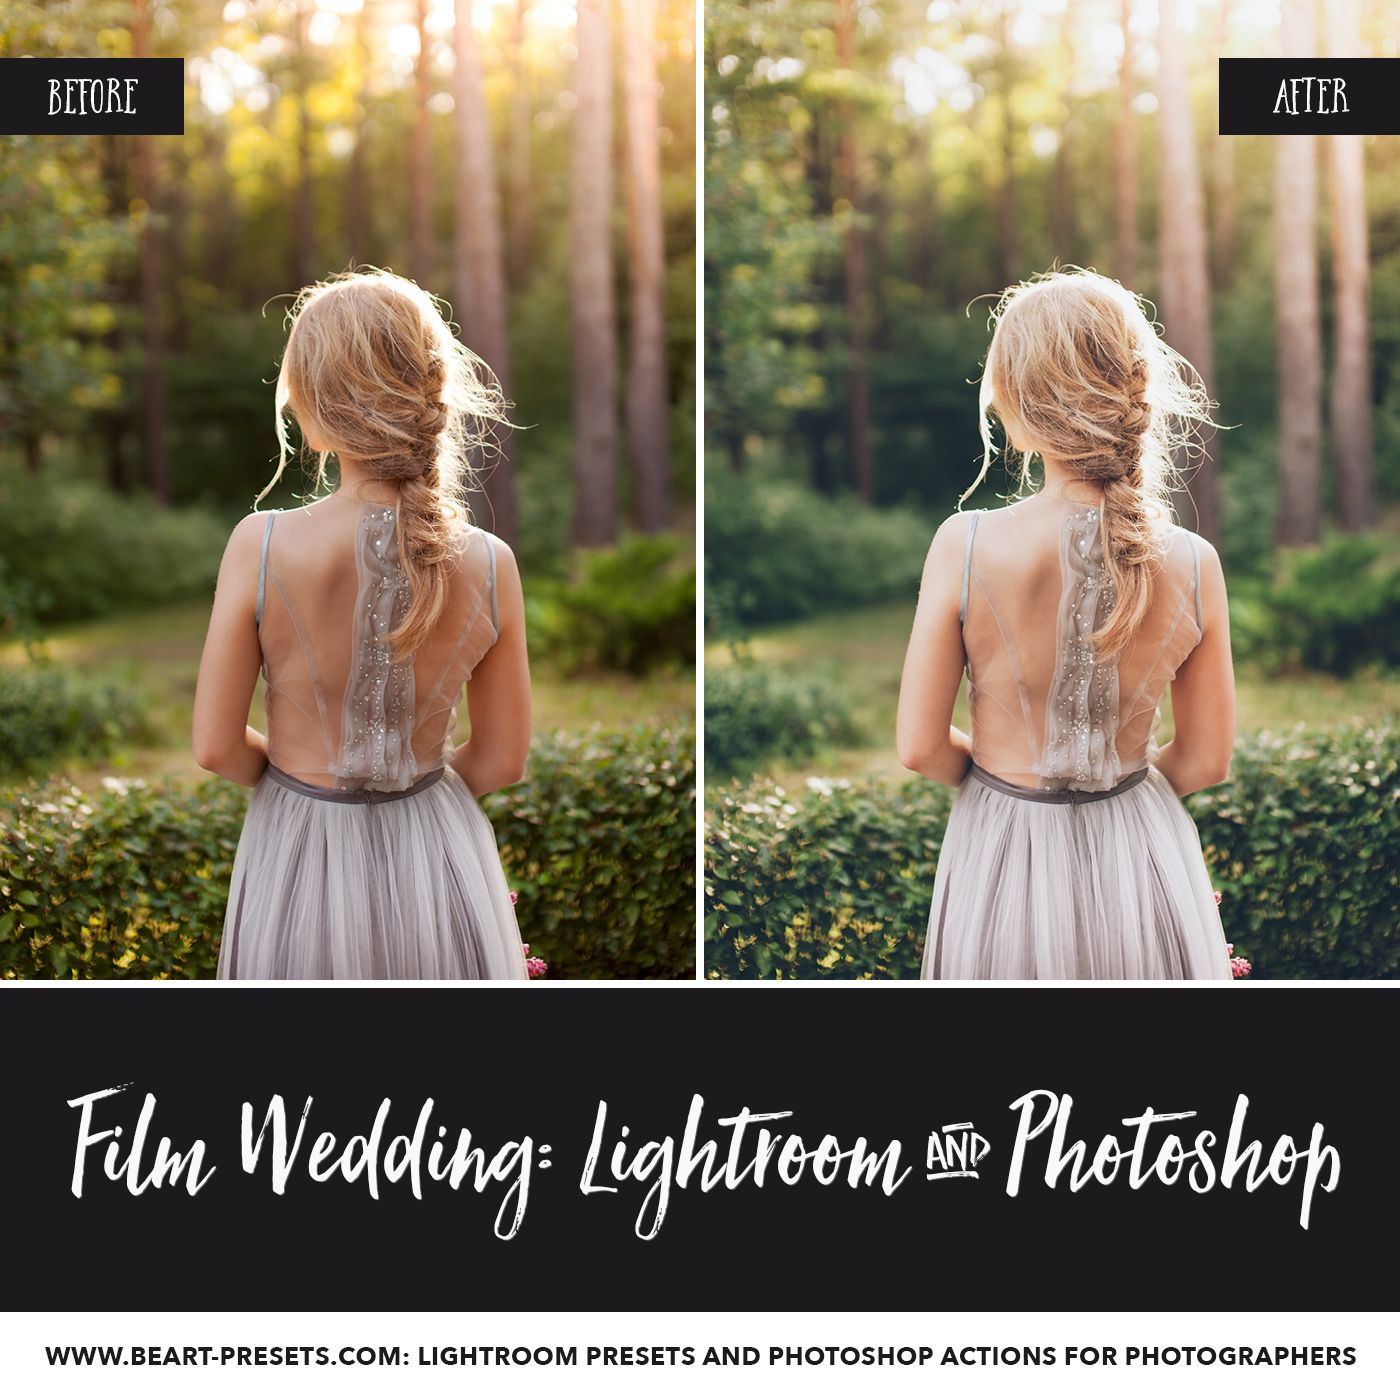 Film Wedding Lightroom Presets Photoshop Actions And Acr